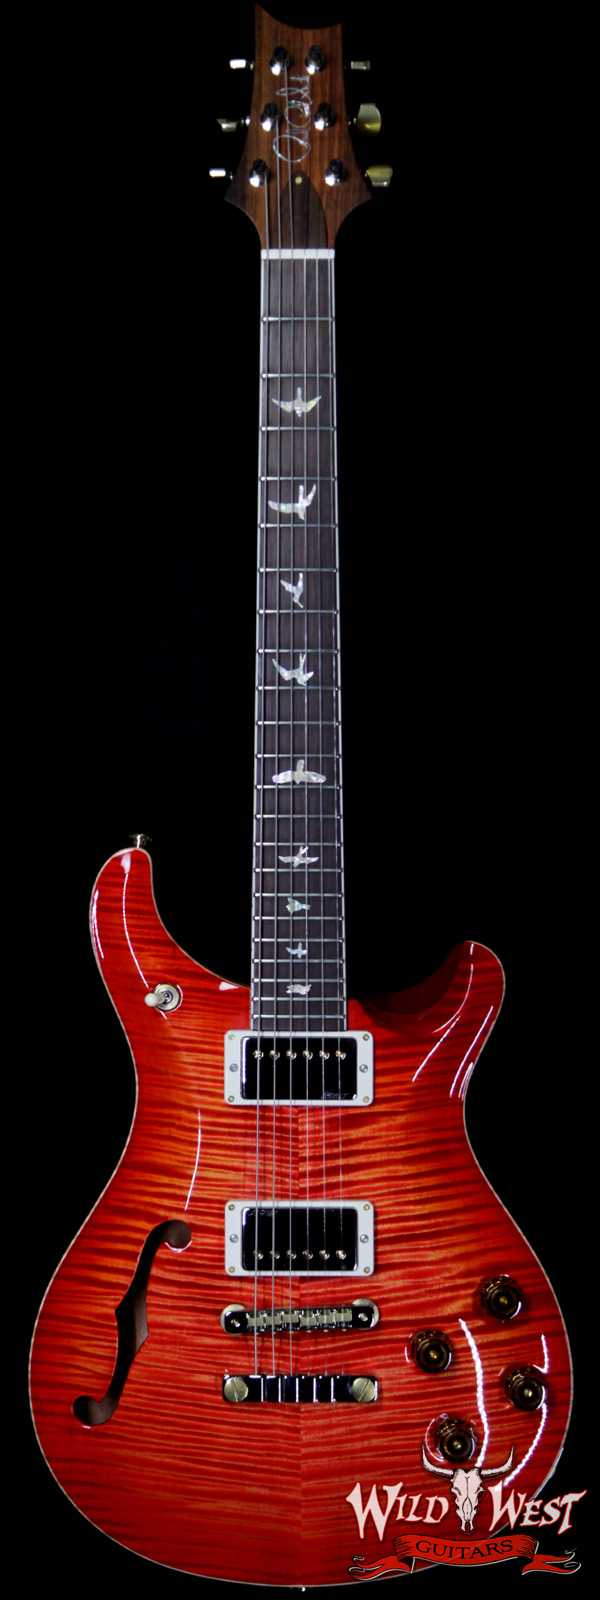 PRS Wild West Guitars 20th Anniversary Limited Run # 22 of 40 Wood Library Artist Package Semi-Hollow McCarty 594 Blood Orange